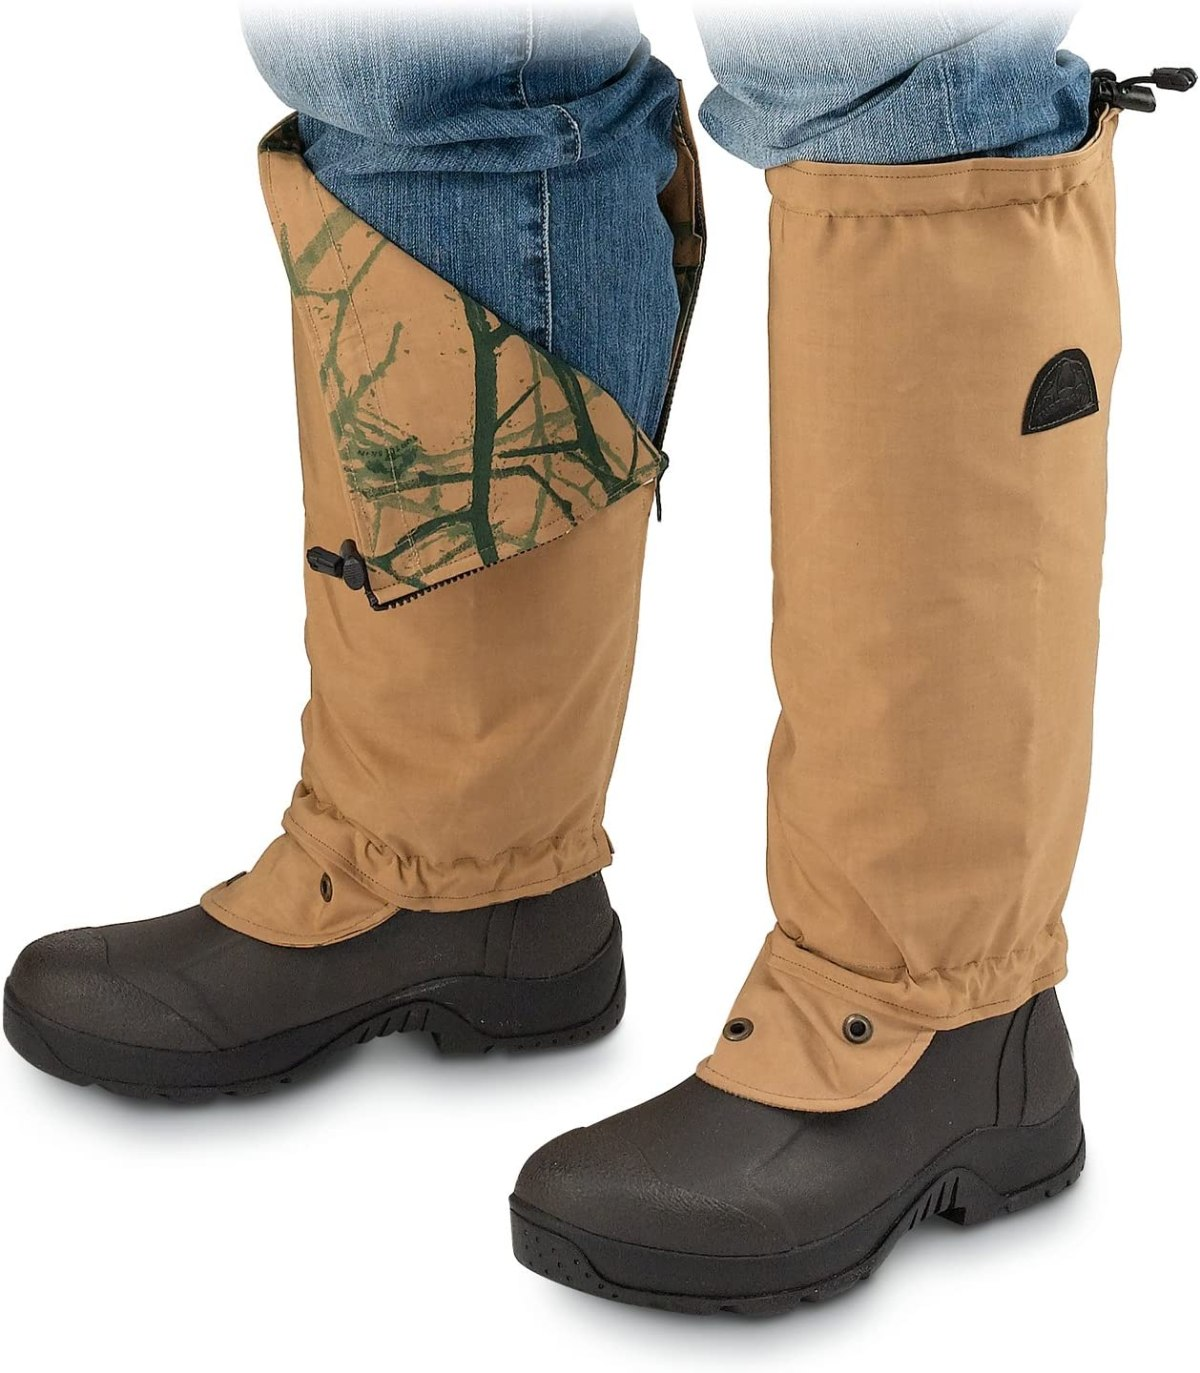 Best gaiters for desert hiking